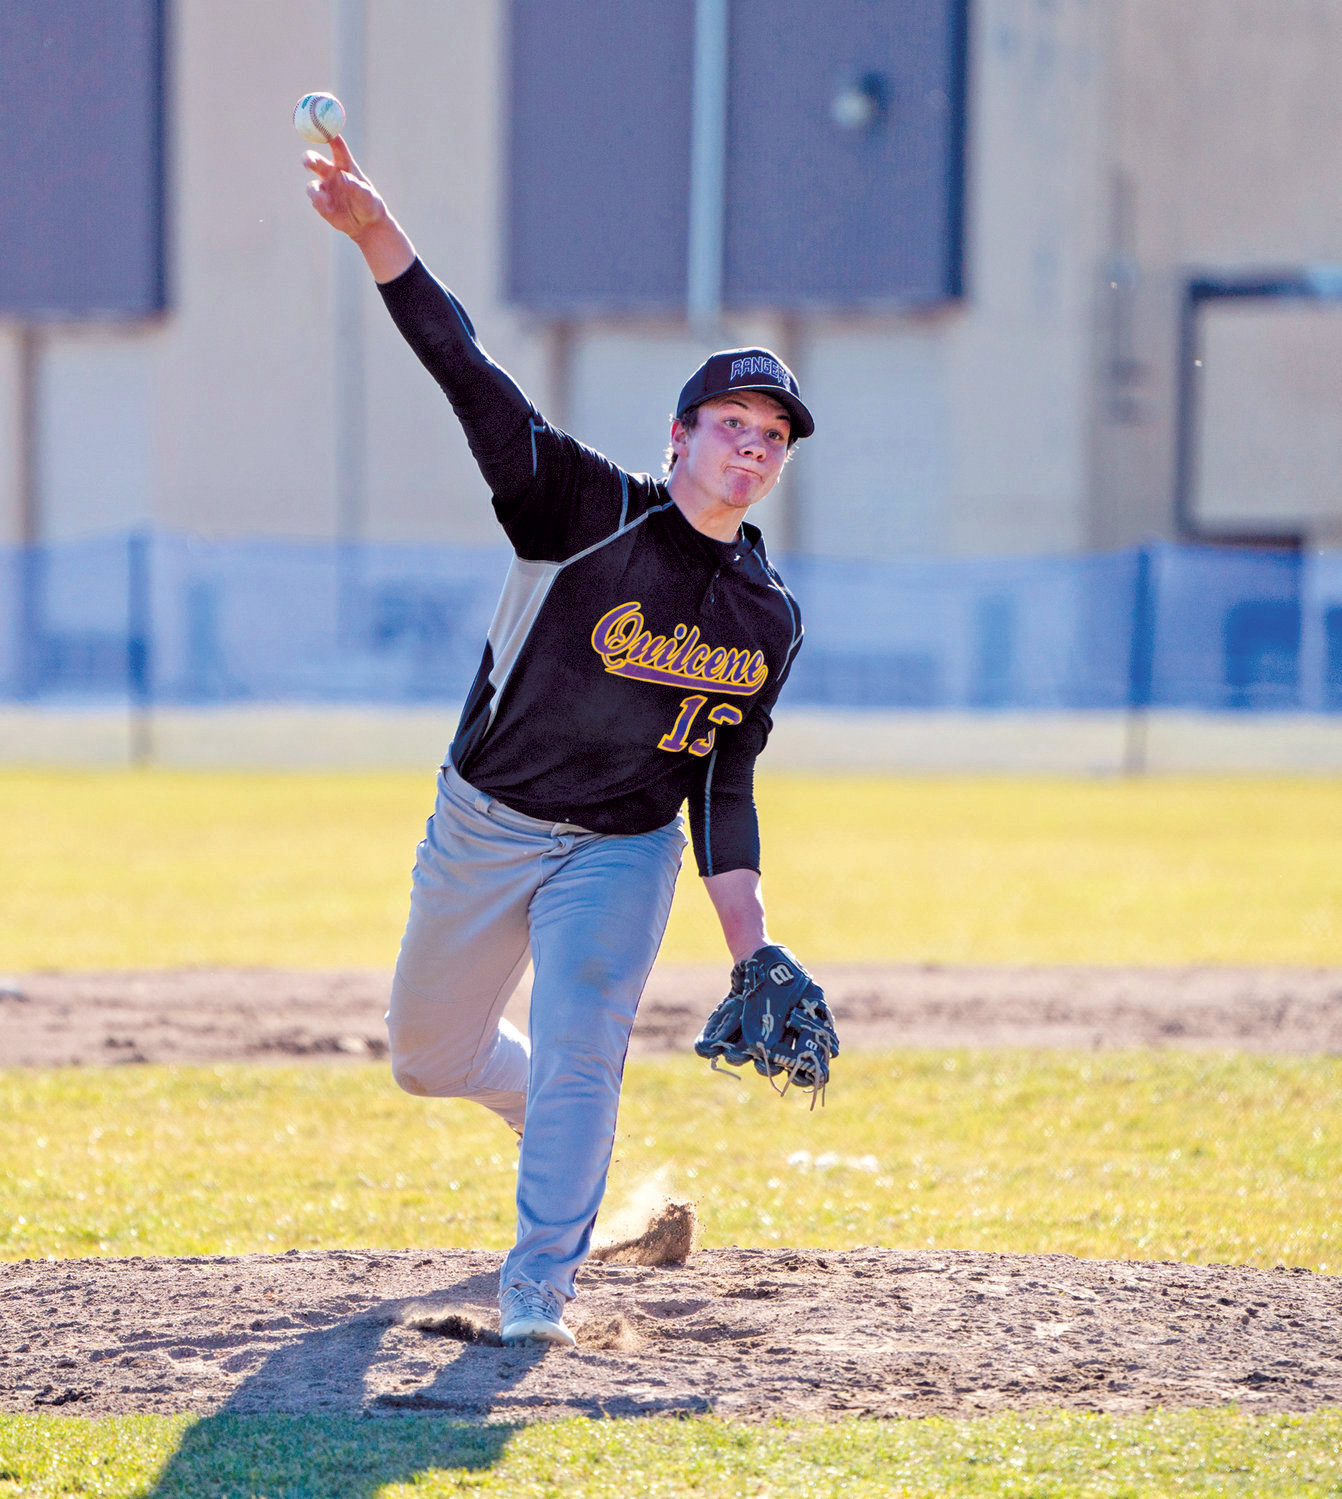 Quilcene's Olin Reynolds pitches during a Monday game against Chimacum at Chimacum High School.